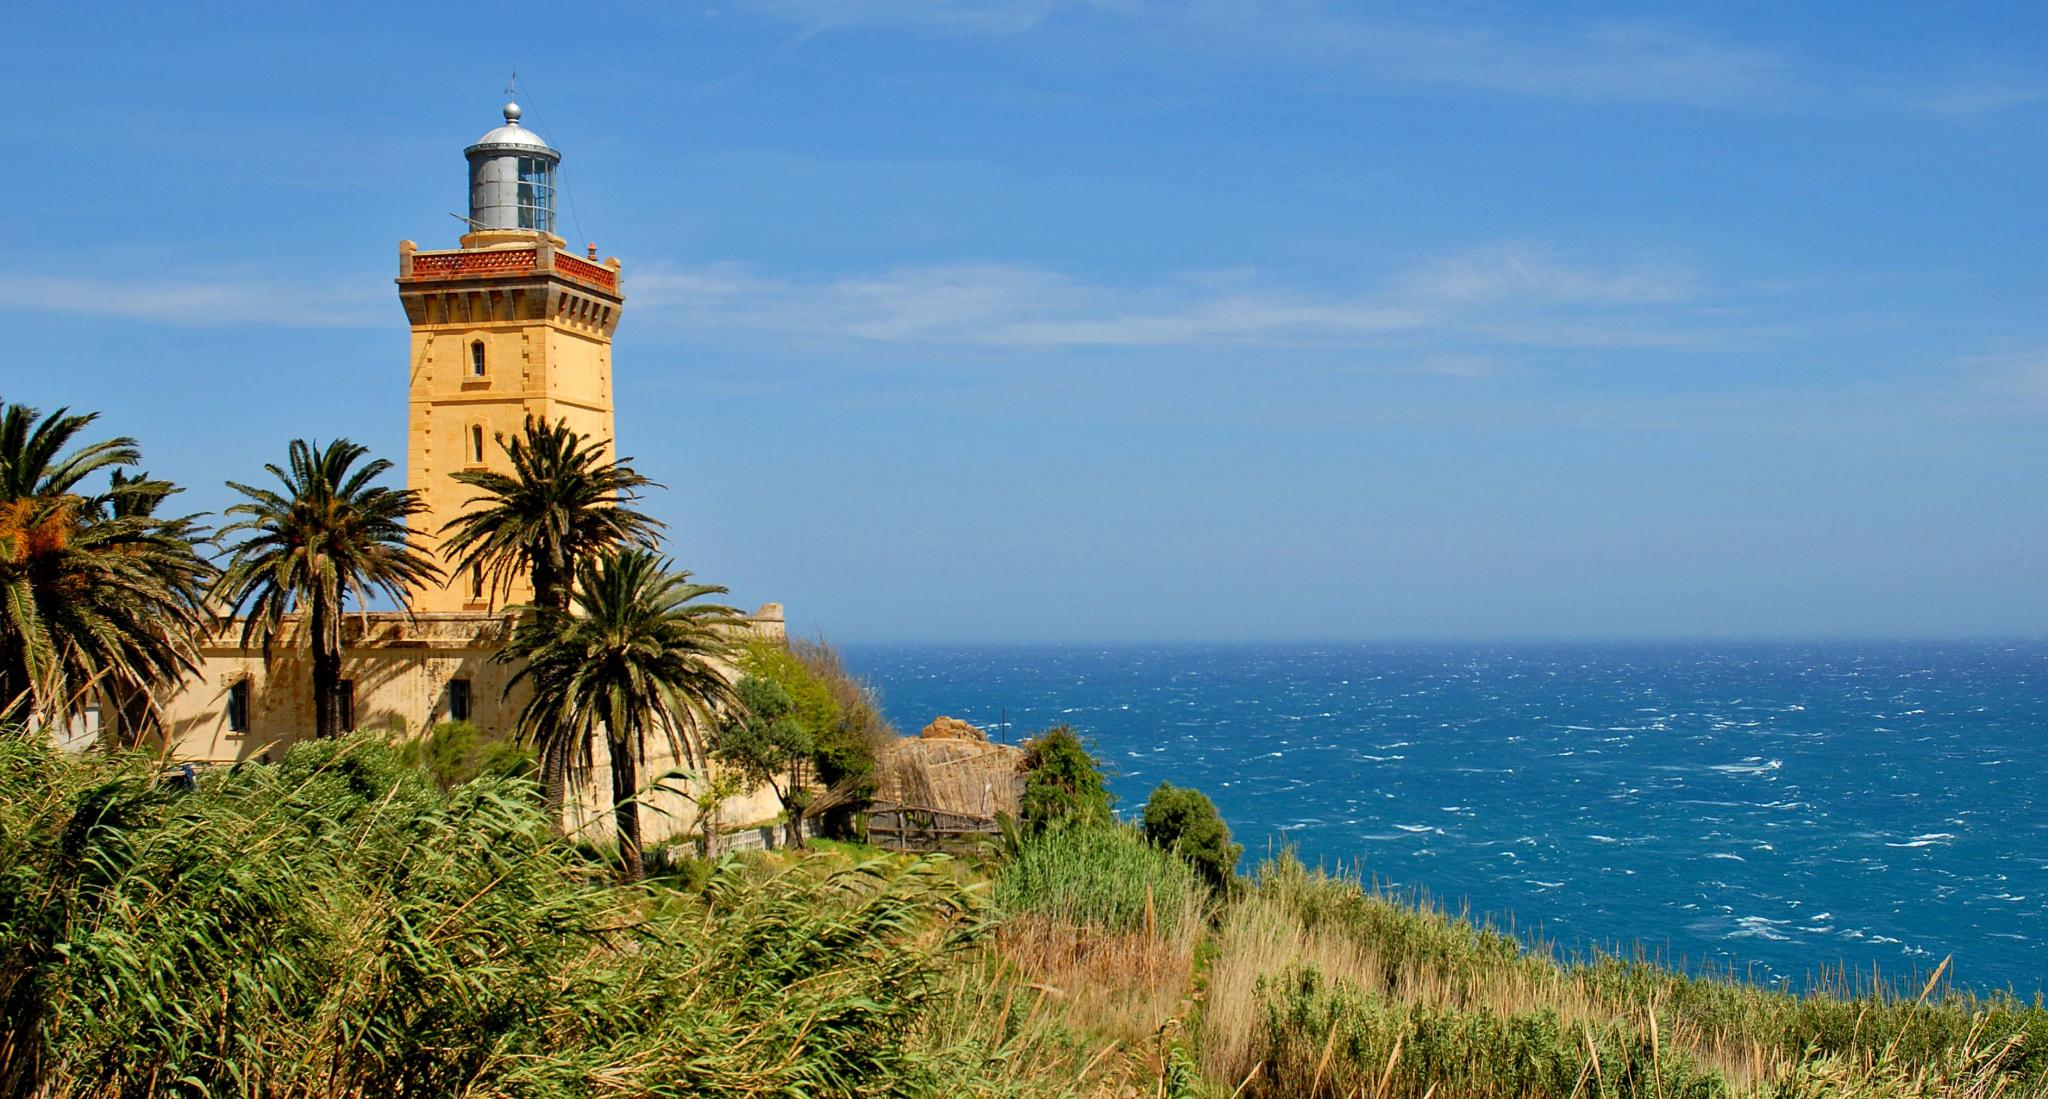 http://www.zicasso.com/sites/default/files/styles/original_scaled_down/public/headerimages/tours/Morocco-Tangier-Lighthouse.jpg